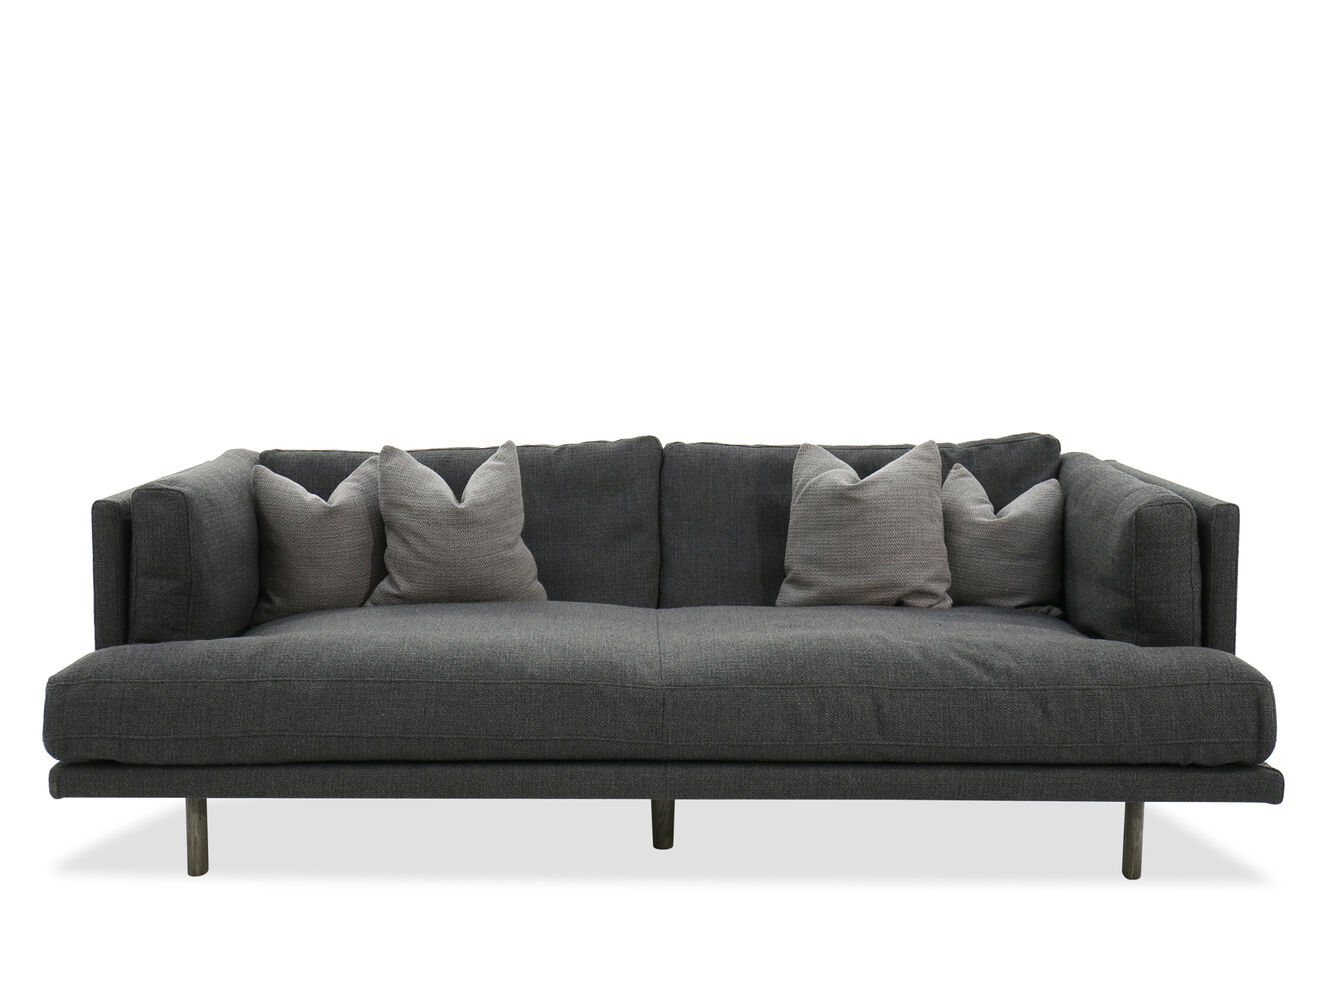 modern low profile 98 shelter sofa in gray mathis brothers furniture. Black Bedroom Furniture Sets. Home Design Ideas